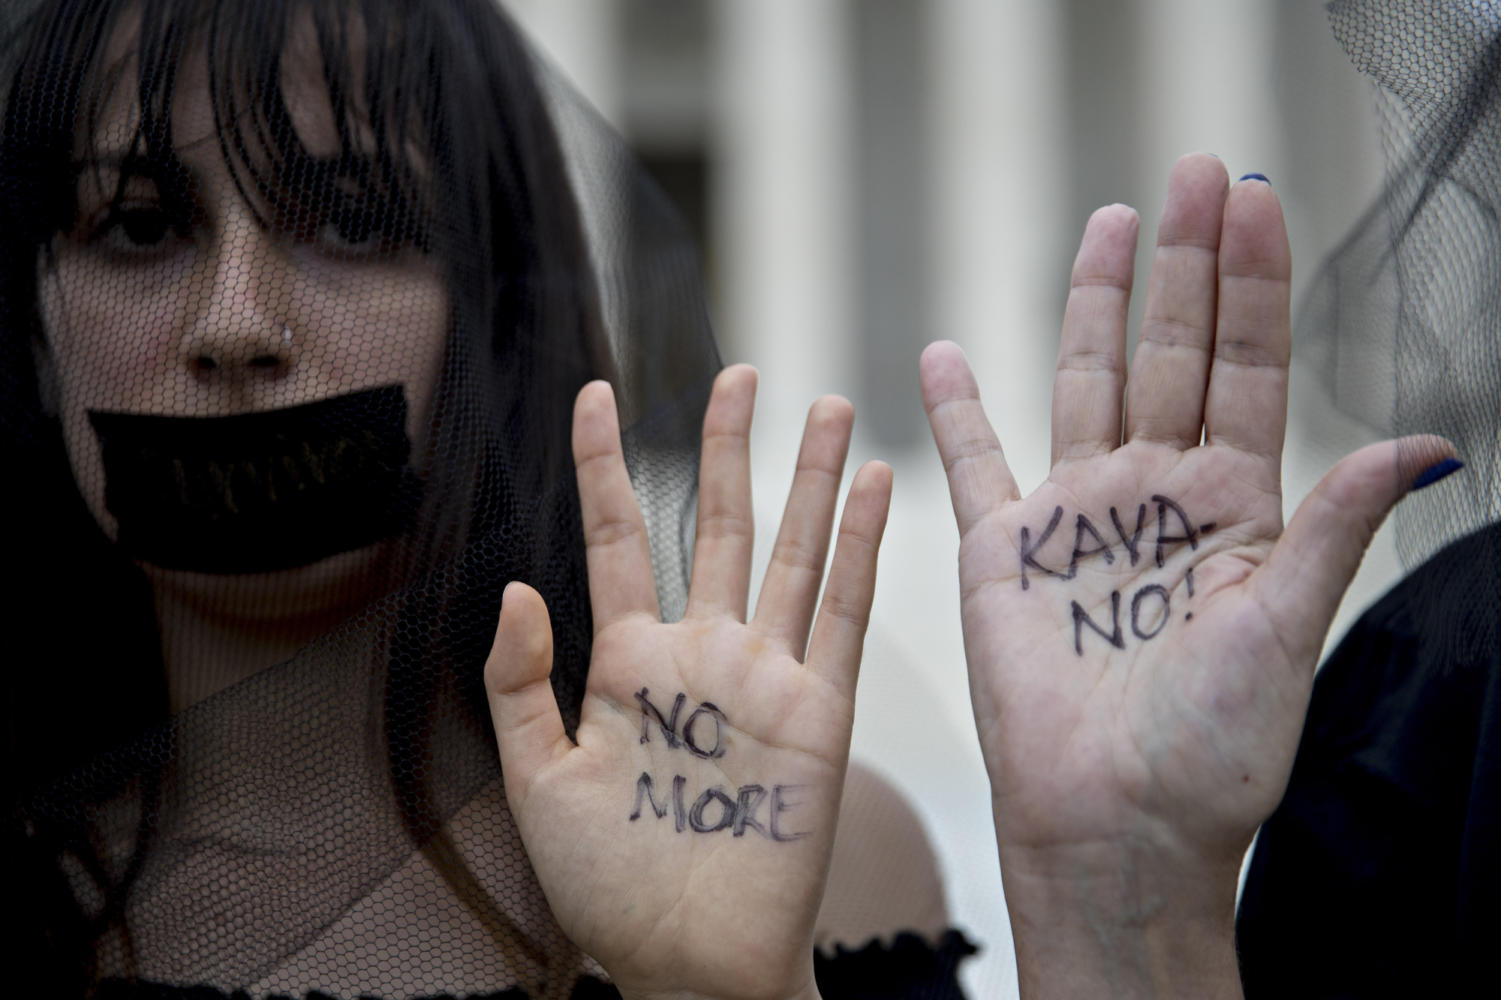 Demonstrators opposed to Supreme Court Associate Justice Brett Kavanaugh stand outside the court with